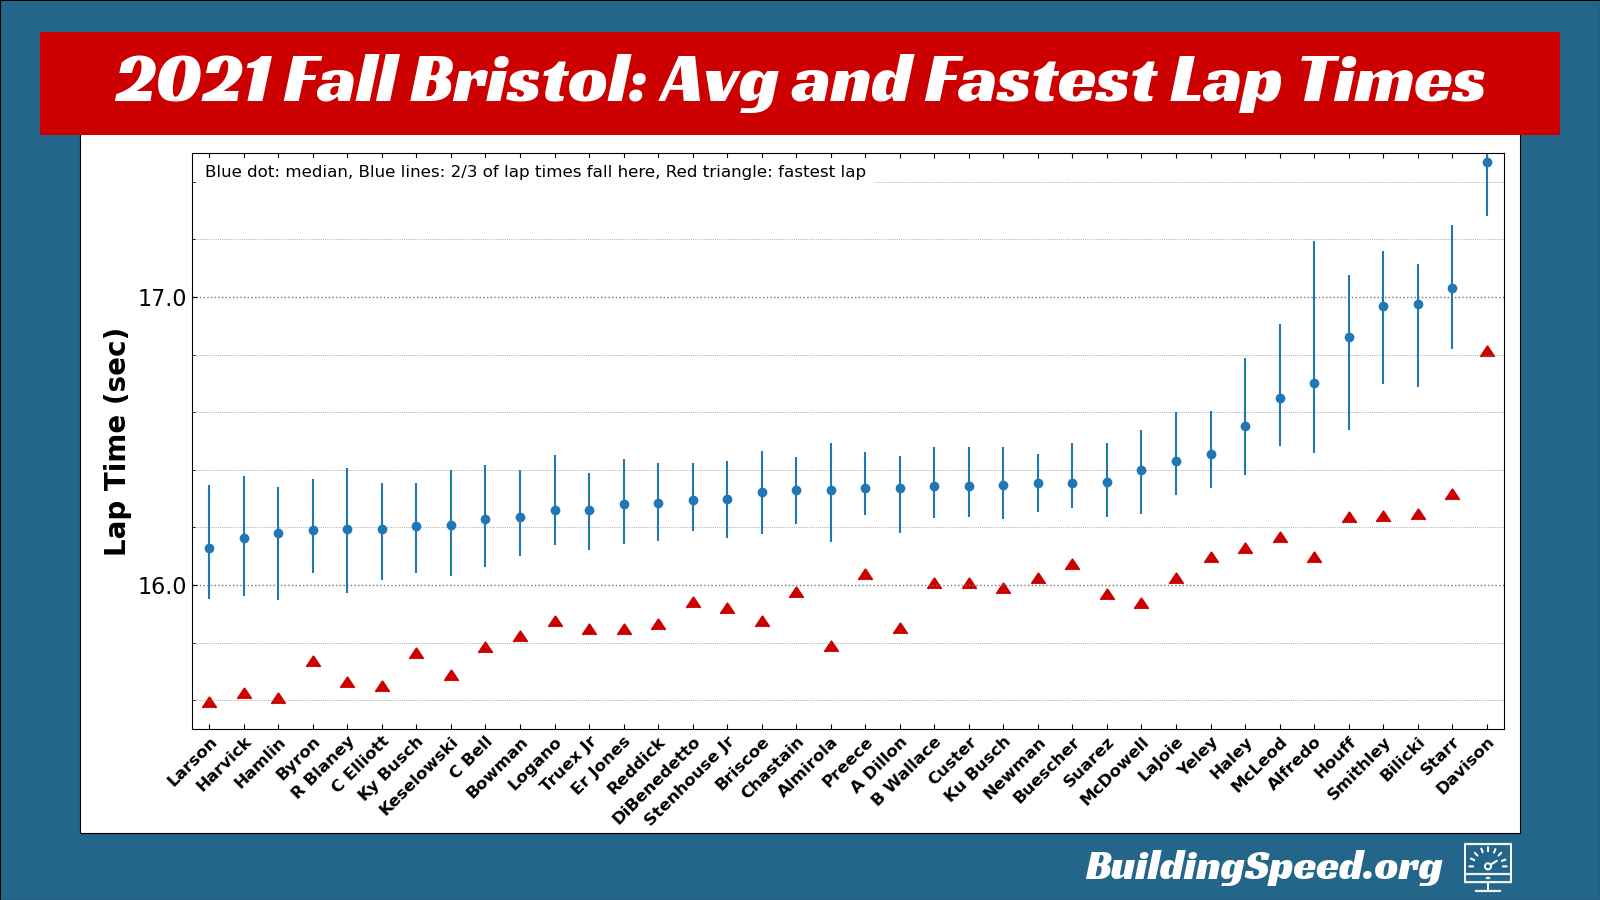 The 2021 Fall Bristol Race recap shows the average lap time and fastest lap times for all drivers.